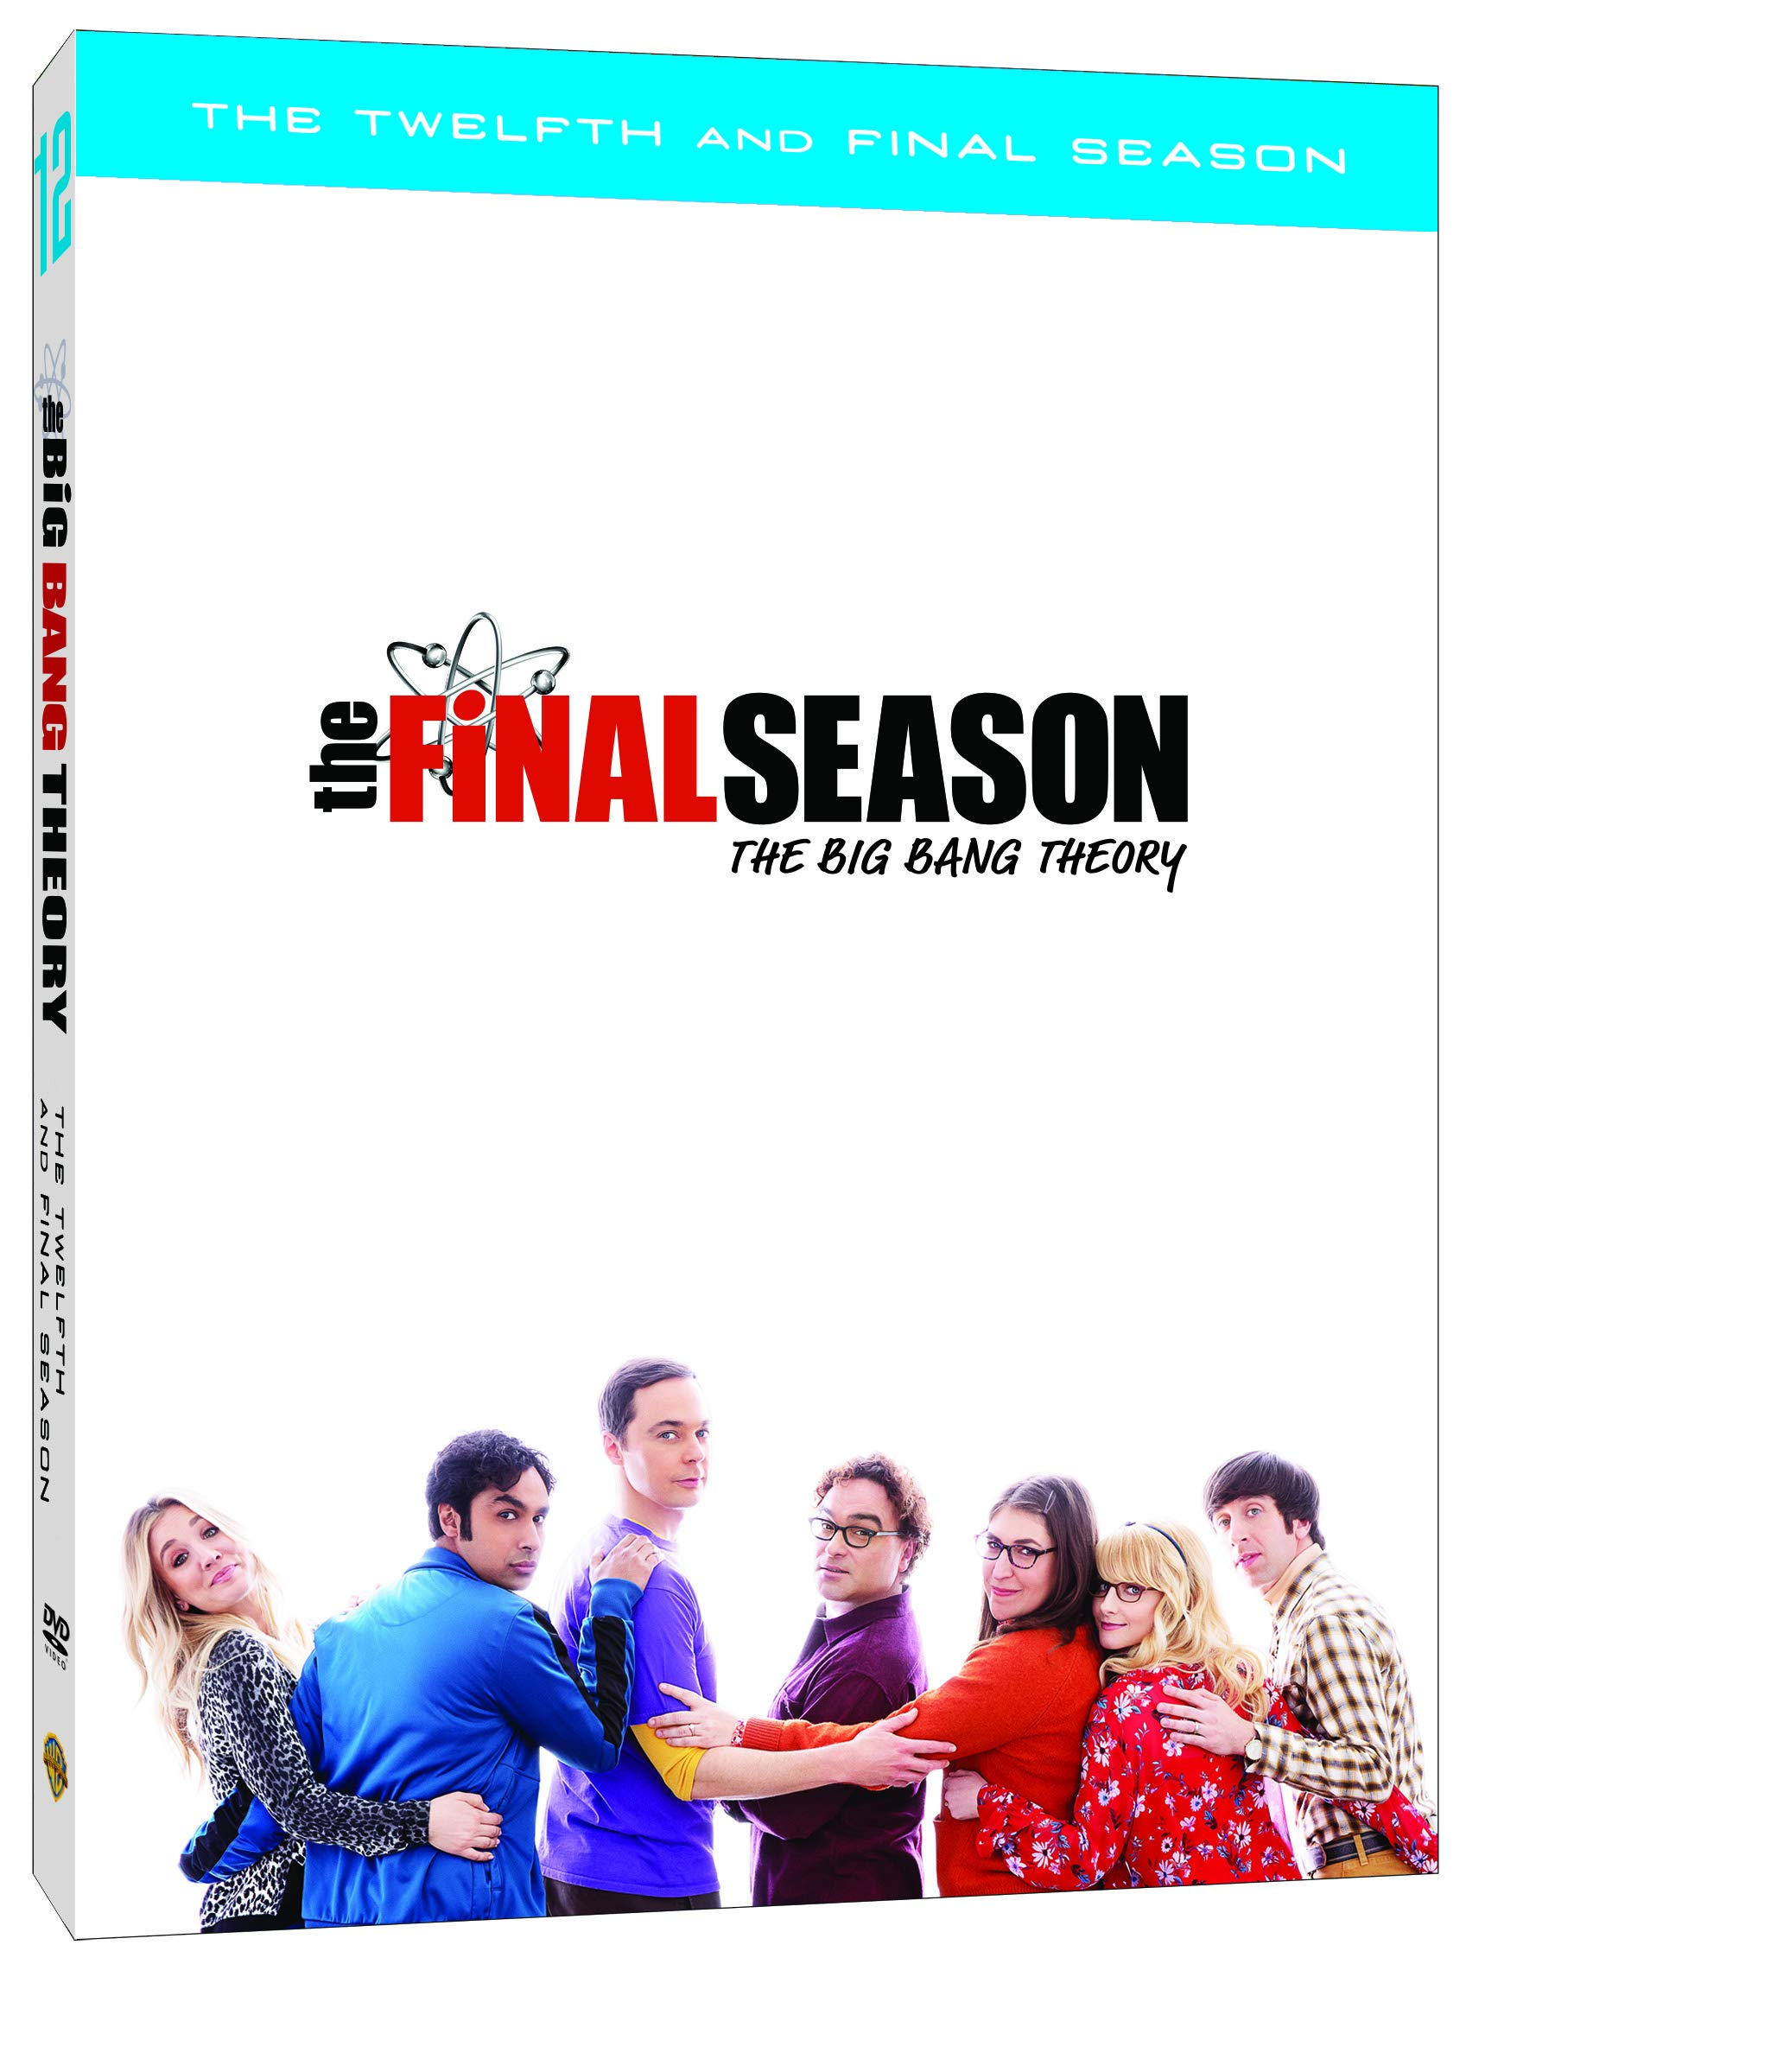 The Big Bang Theory: The Twelfth and Final Season by WarnerBrothers